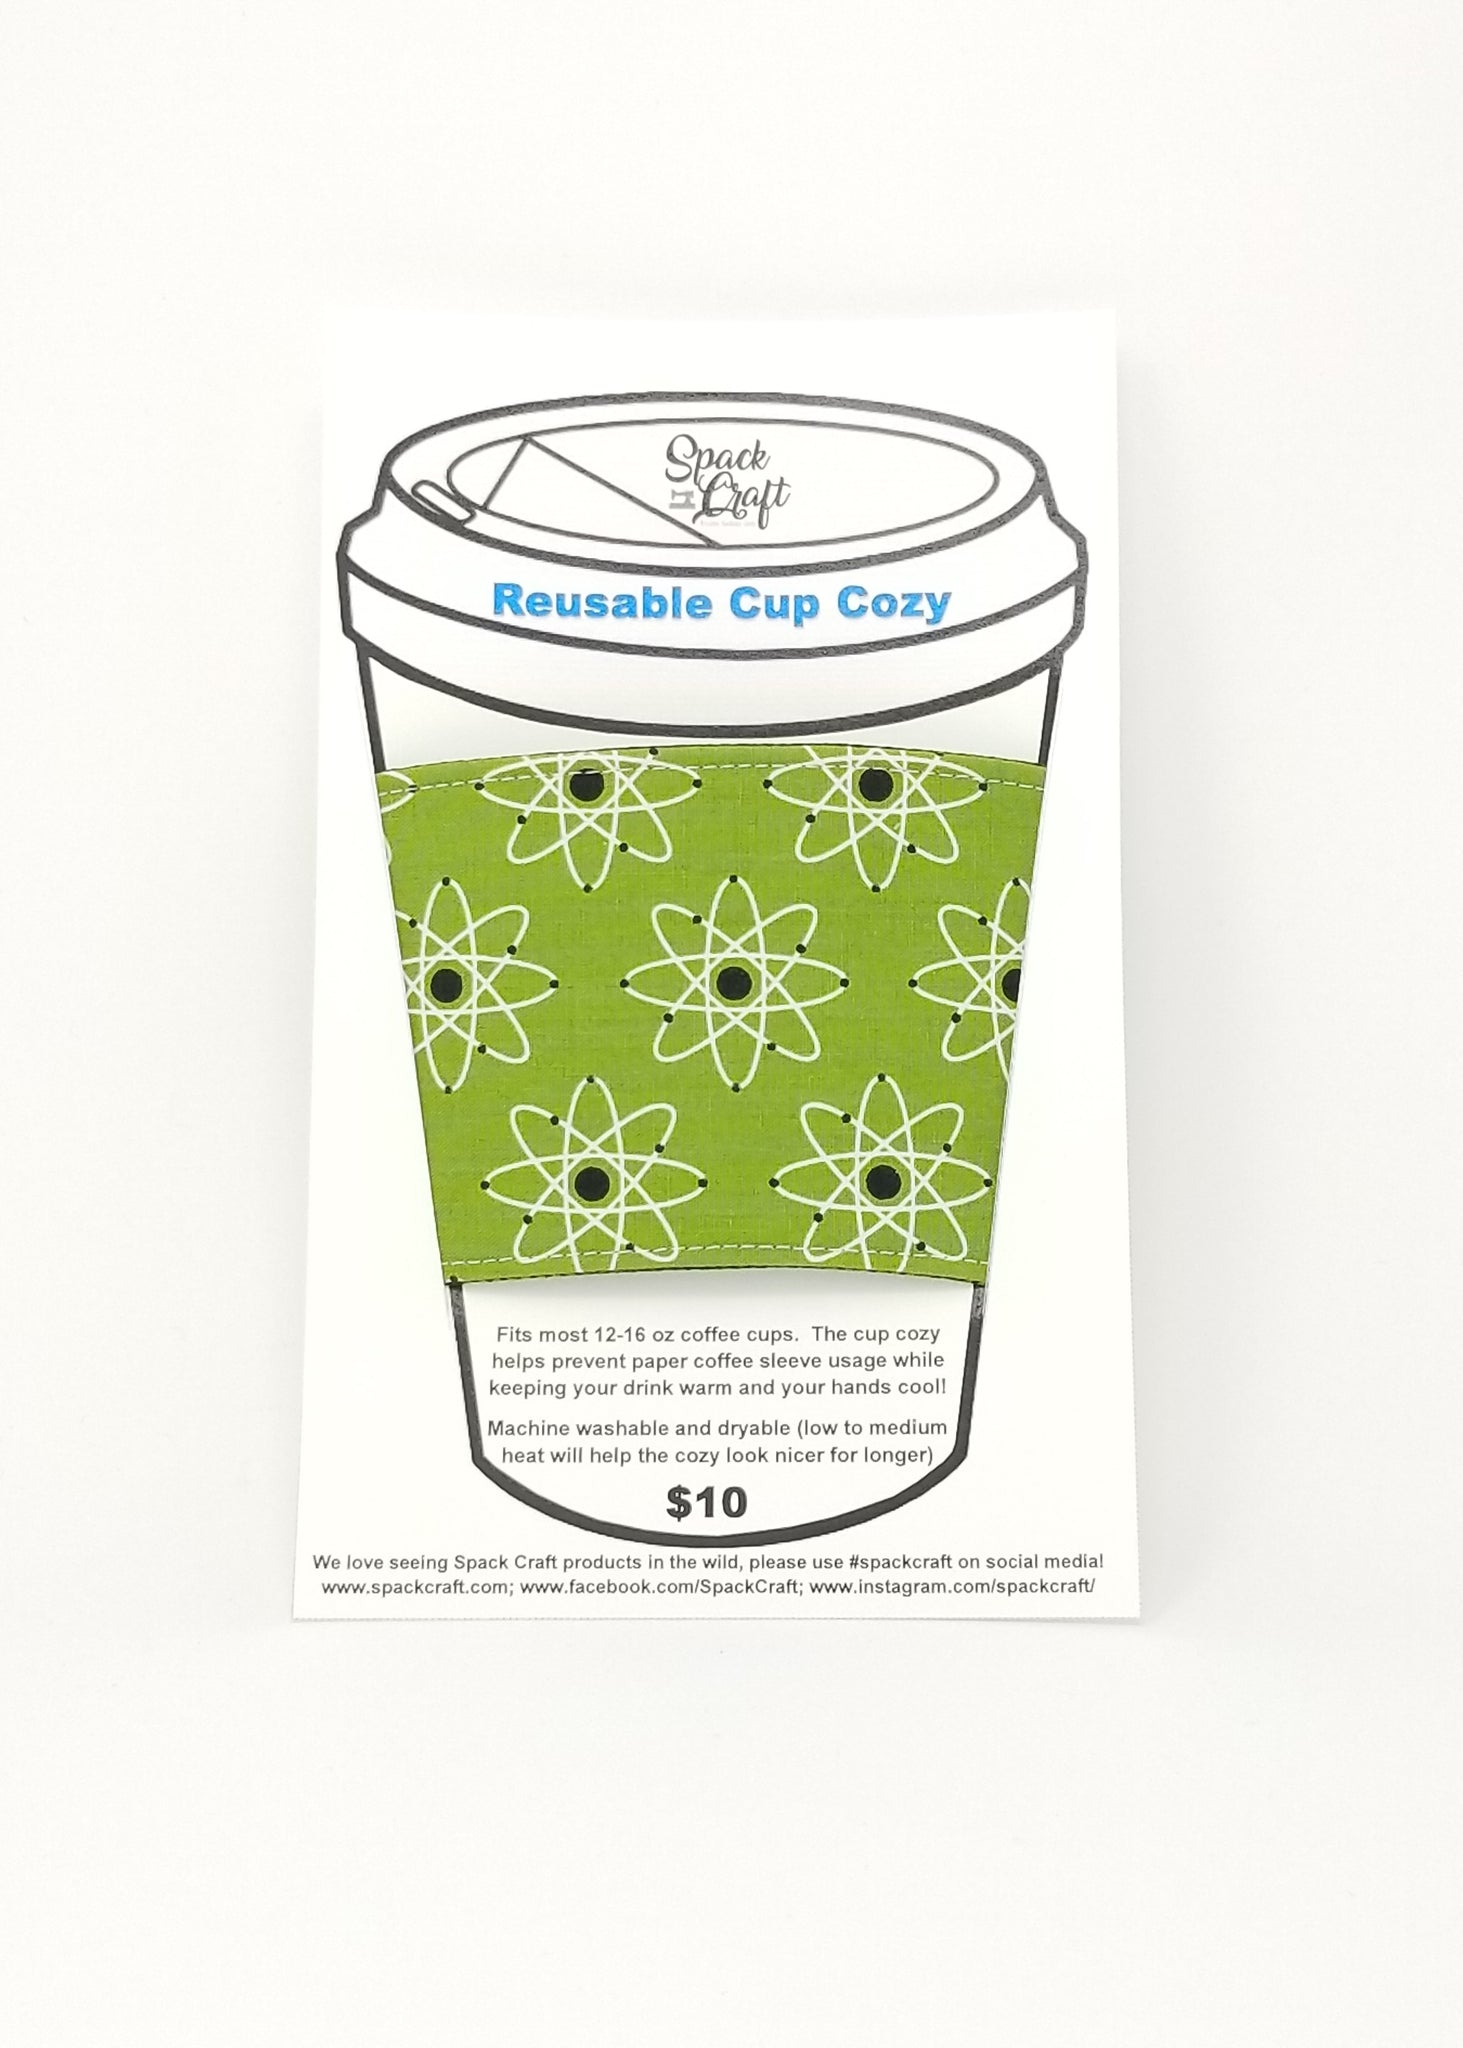 Reusable cup cozy in packaging - Atomic Green